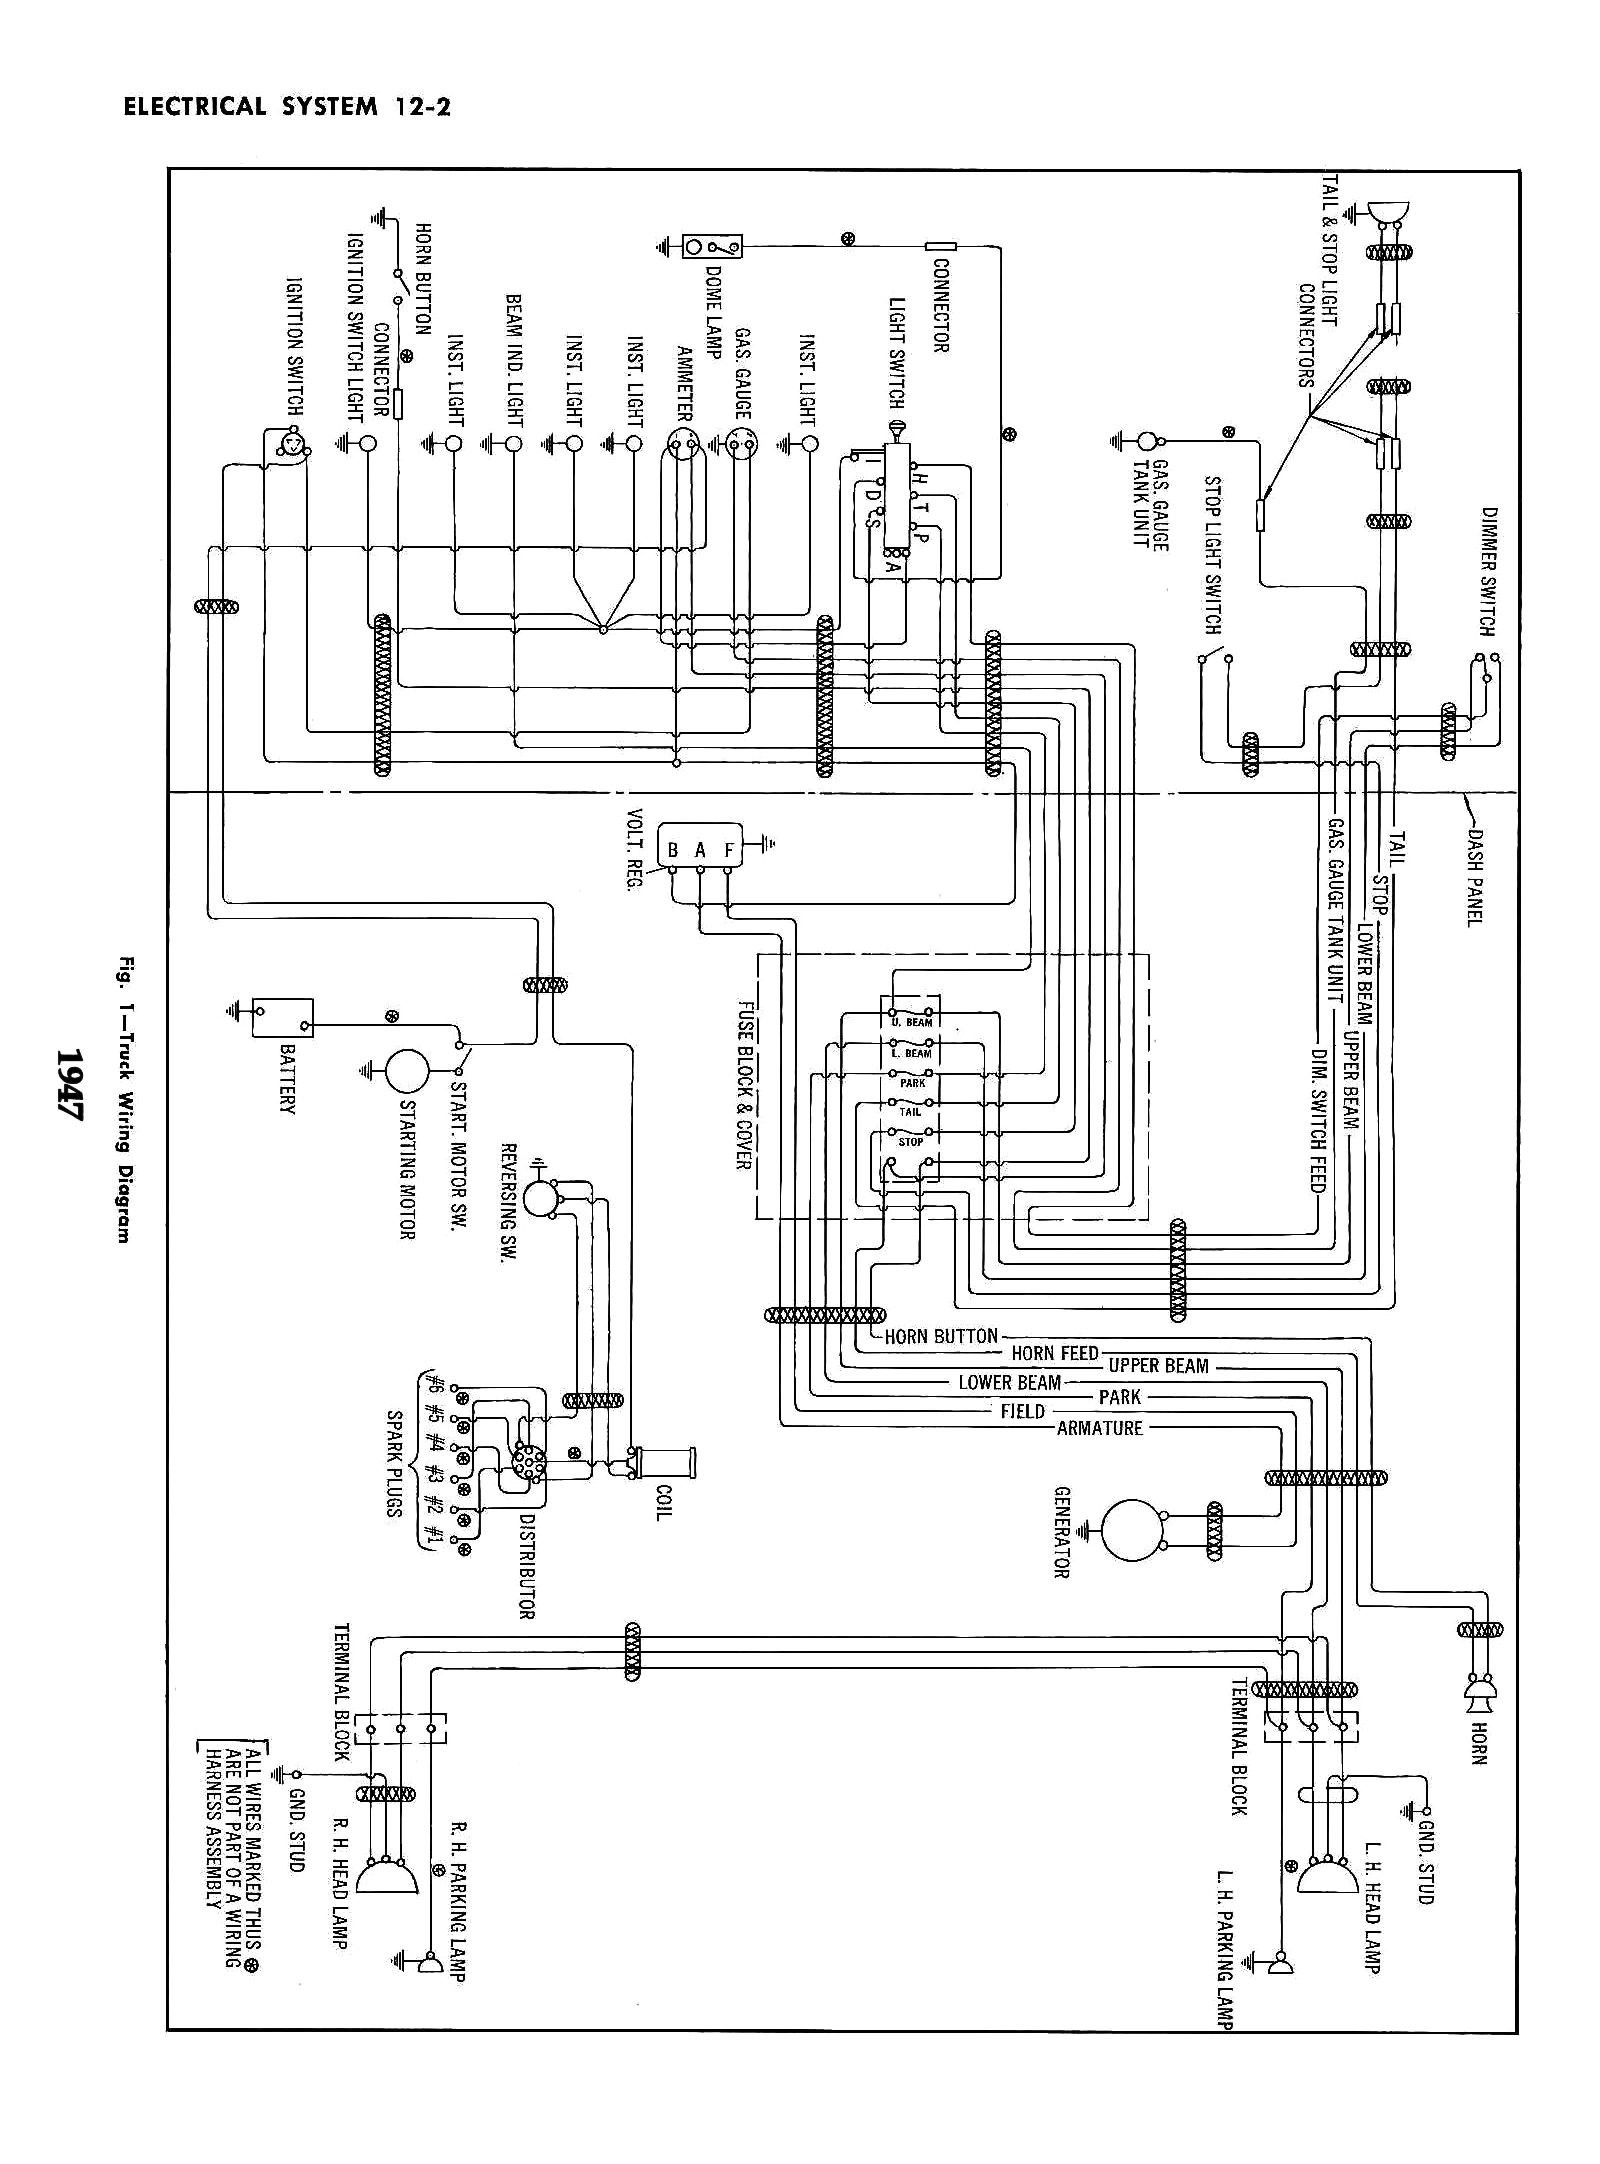 Turn Signal Wiring Diagram Chevy Truck Awesome Brake Light Wiring Diagram Chevy Diagram Of Turn Signal Wiring Diagram Chevy Truck